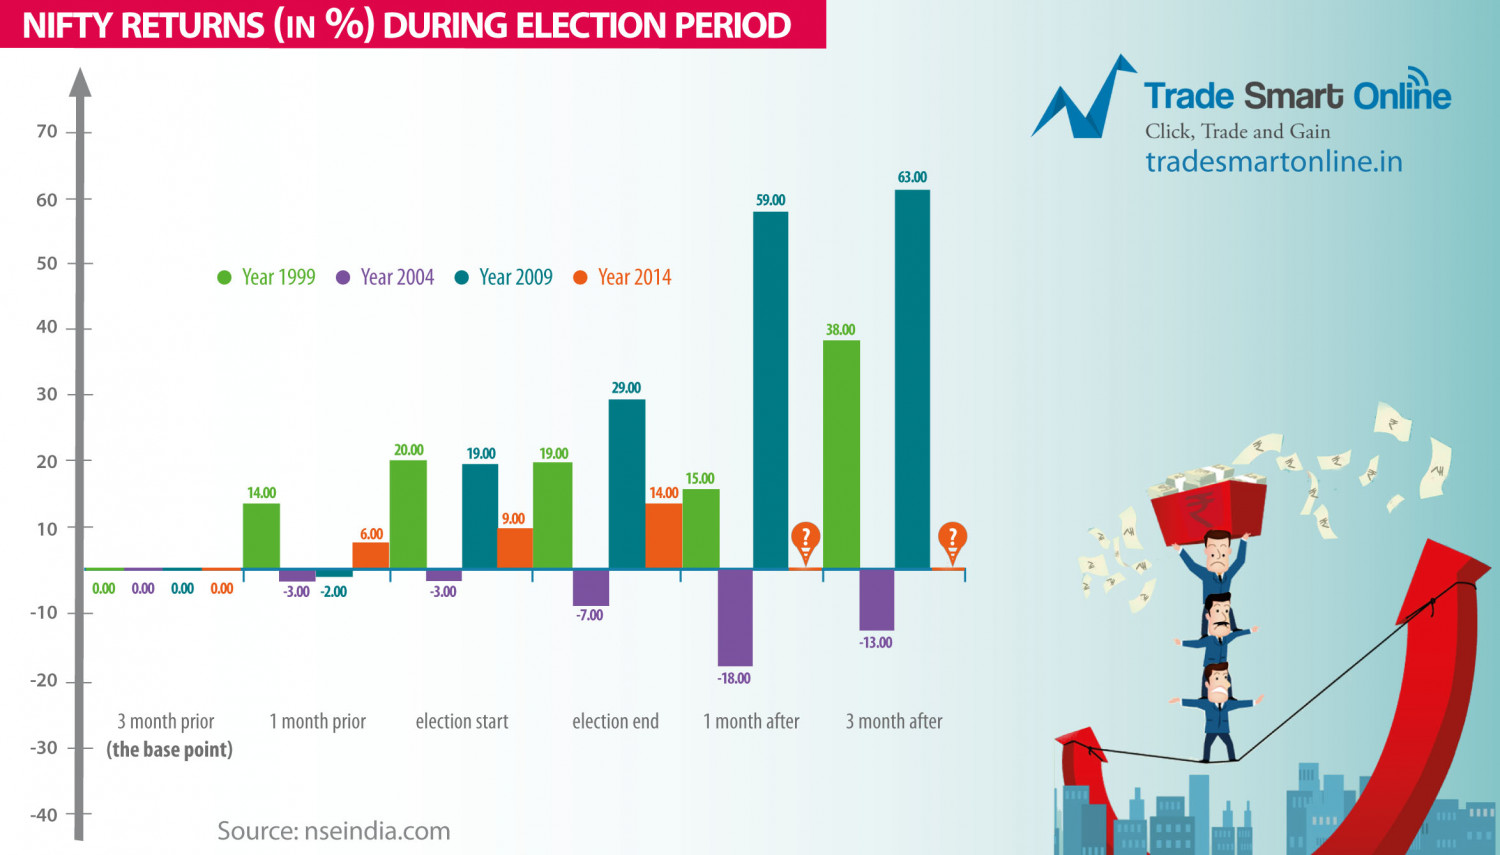 NIFTY Returns During  Election Period Infographic